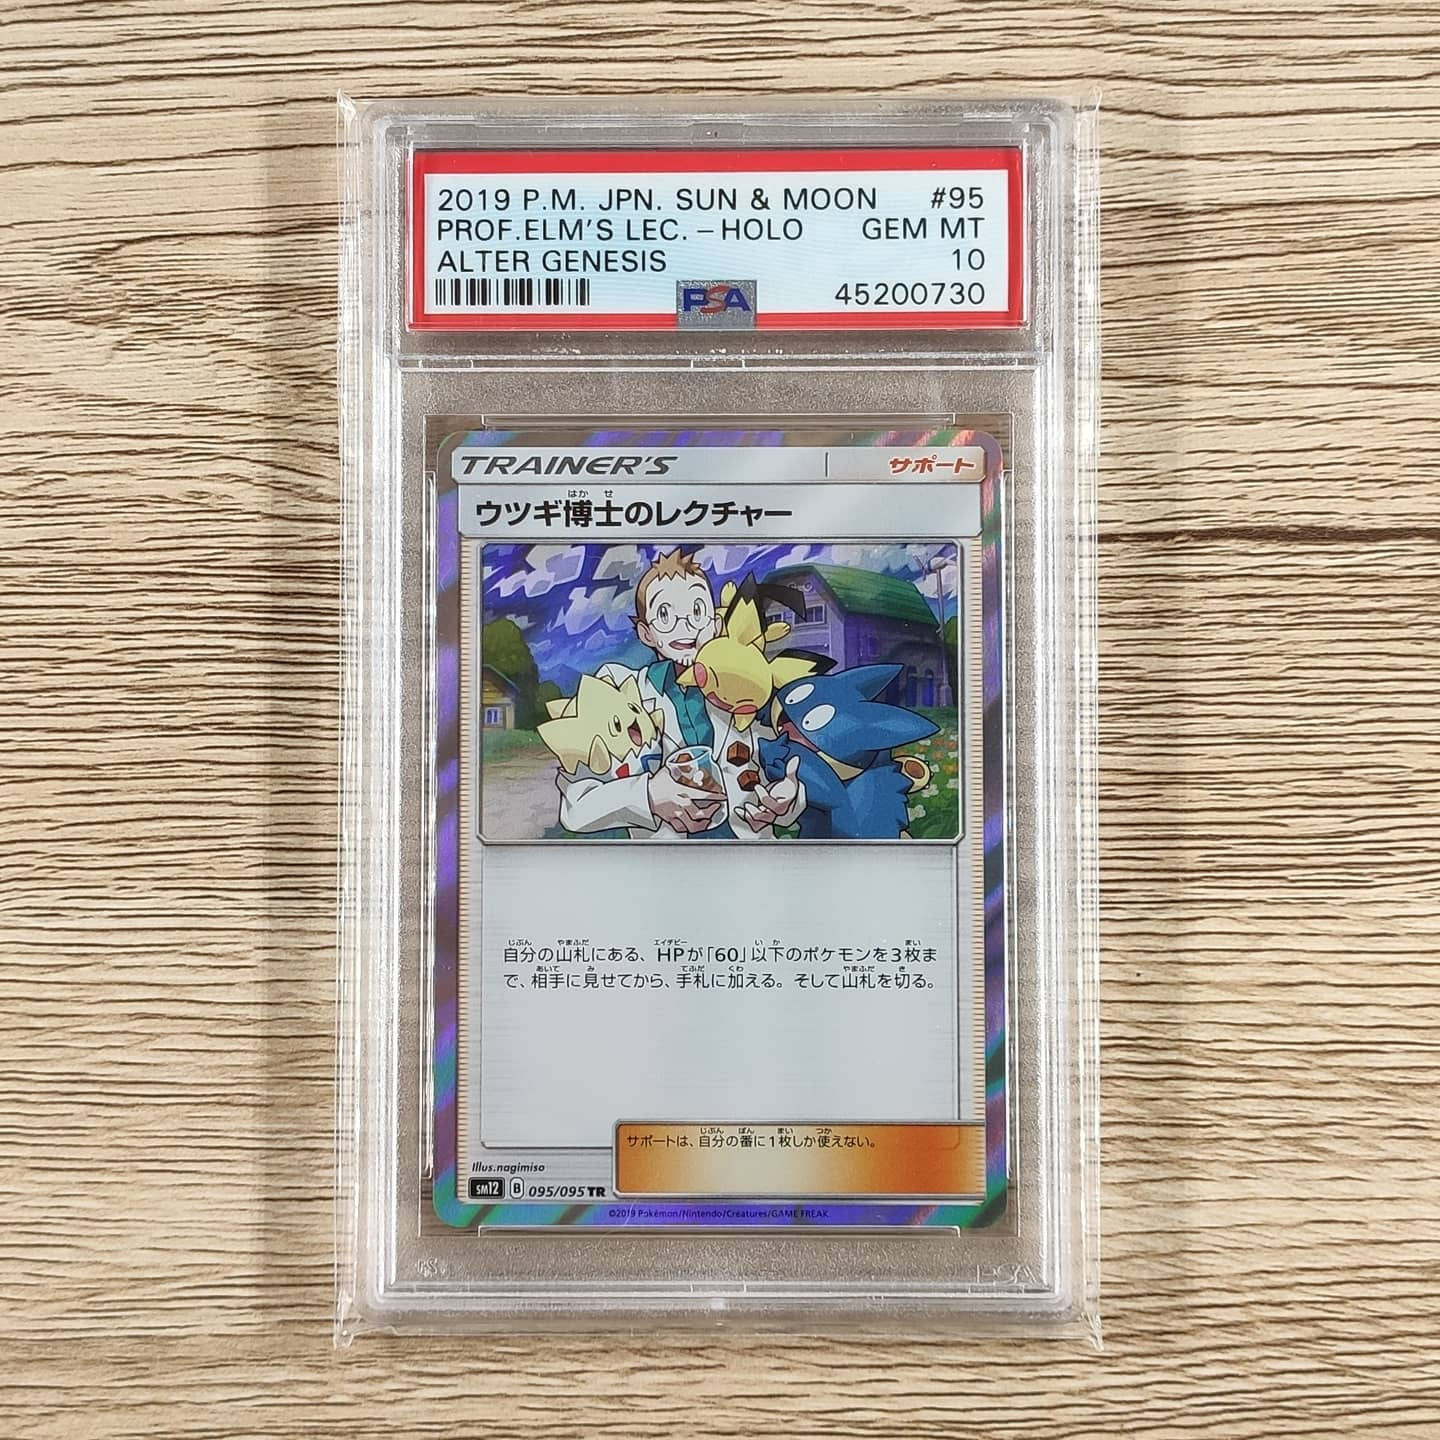 My Japanese and Korean Professor Elm's Lecture cards (picture from my Instagram feed).